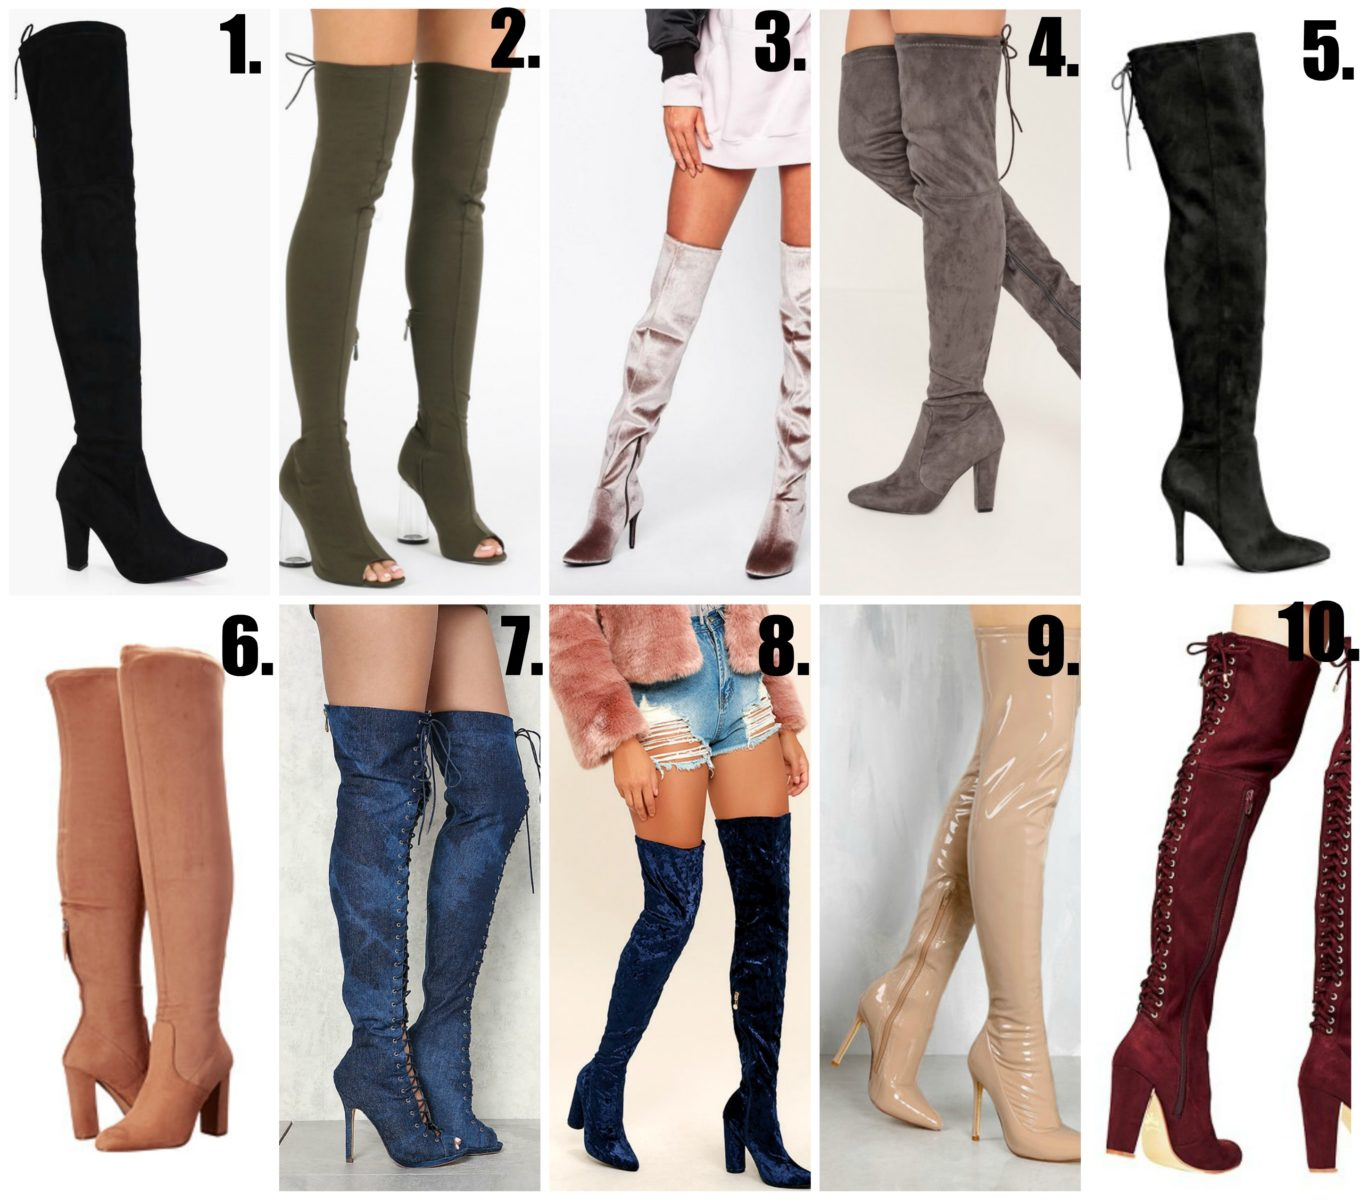 Top 10 Thigh/Knee High Boots Under $100